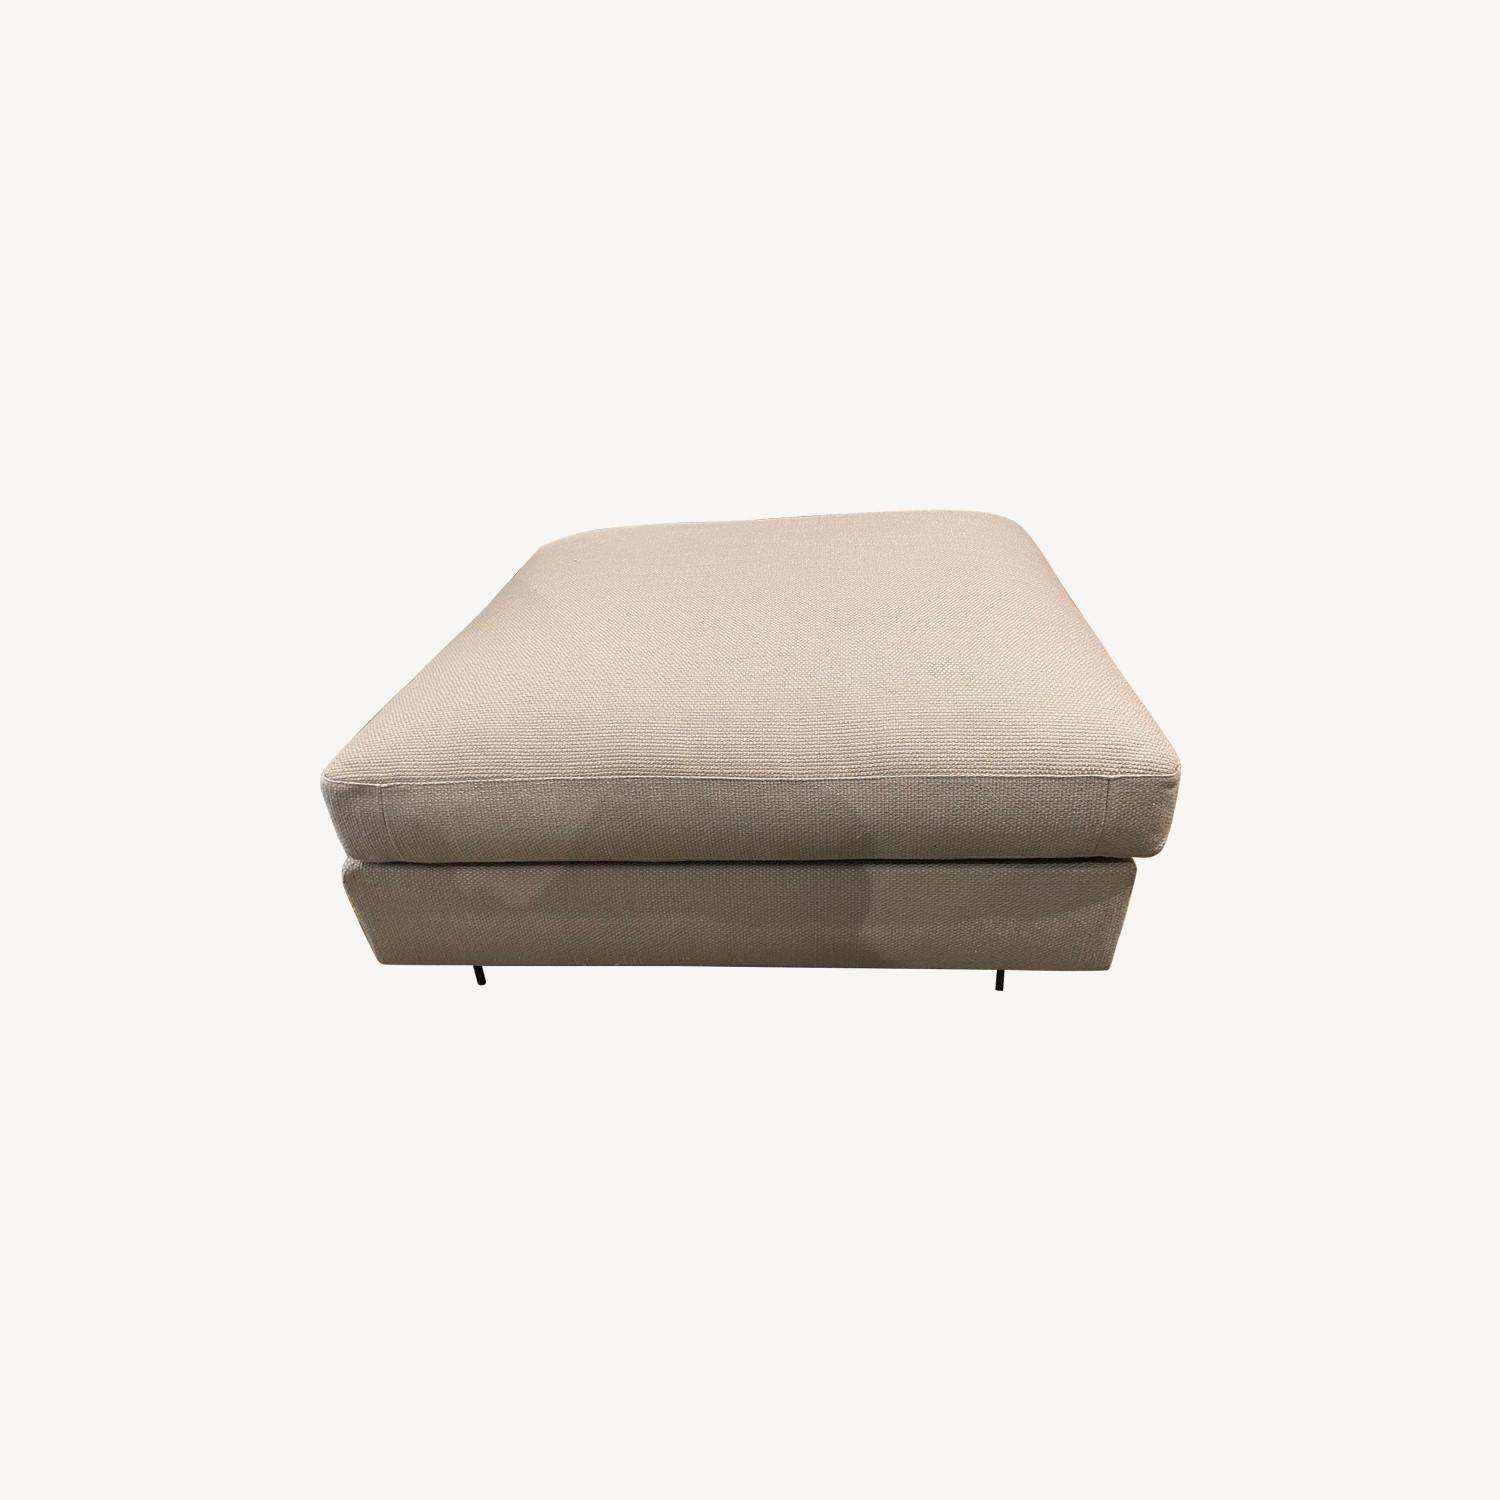 Camerich Cloud Ottoman Coffee Table - image-0